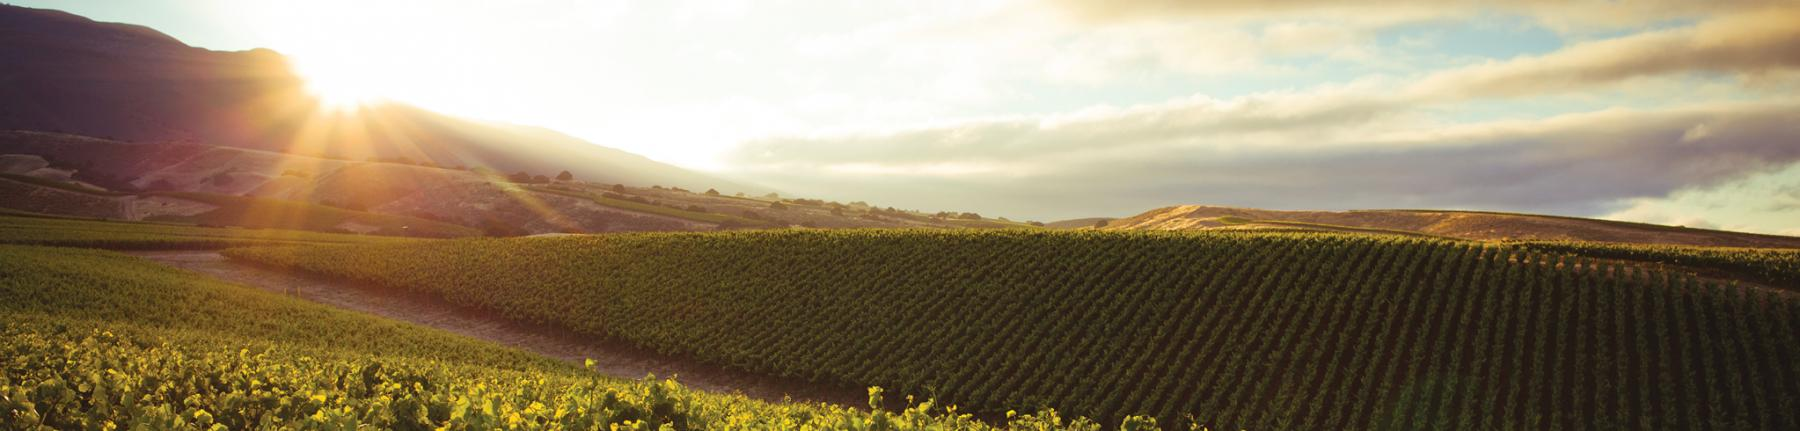 Sunrise over La Crema vineyards in Monterey County, California